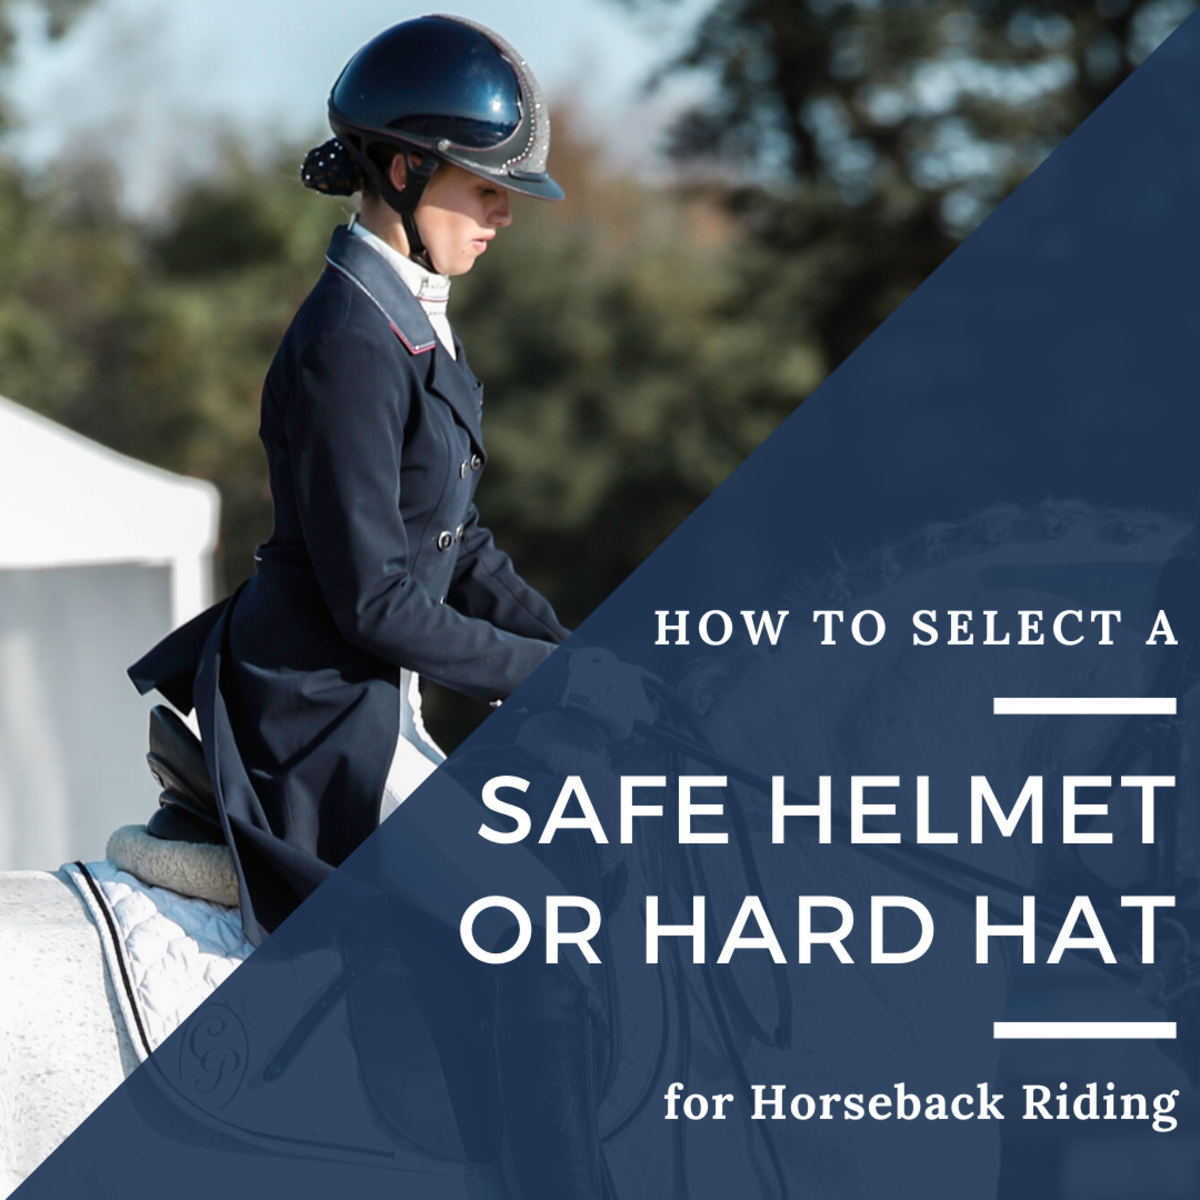 How to Select a Safe Helmet or Hard Hat for Horseback Riding